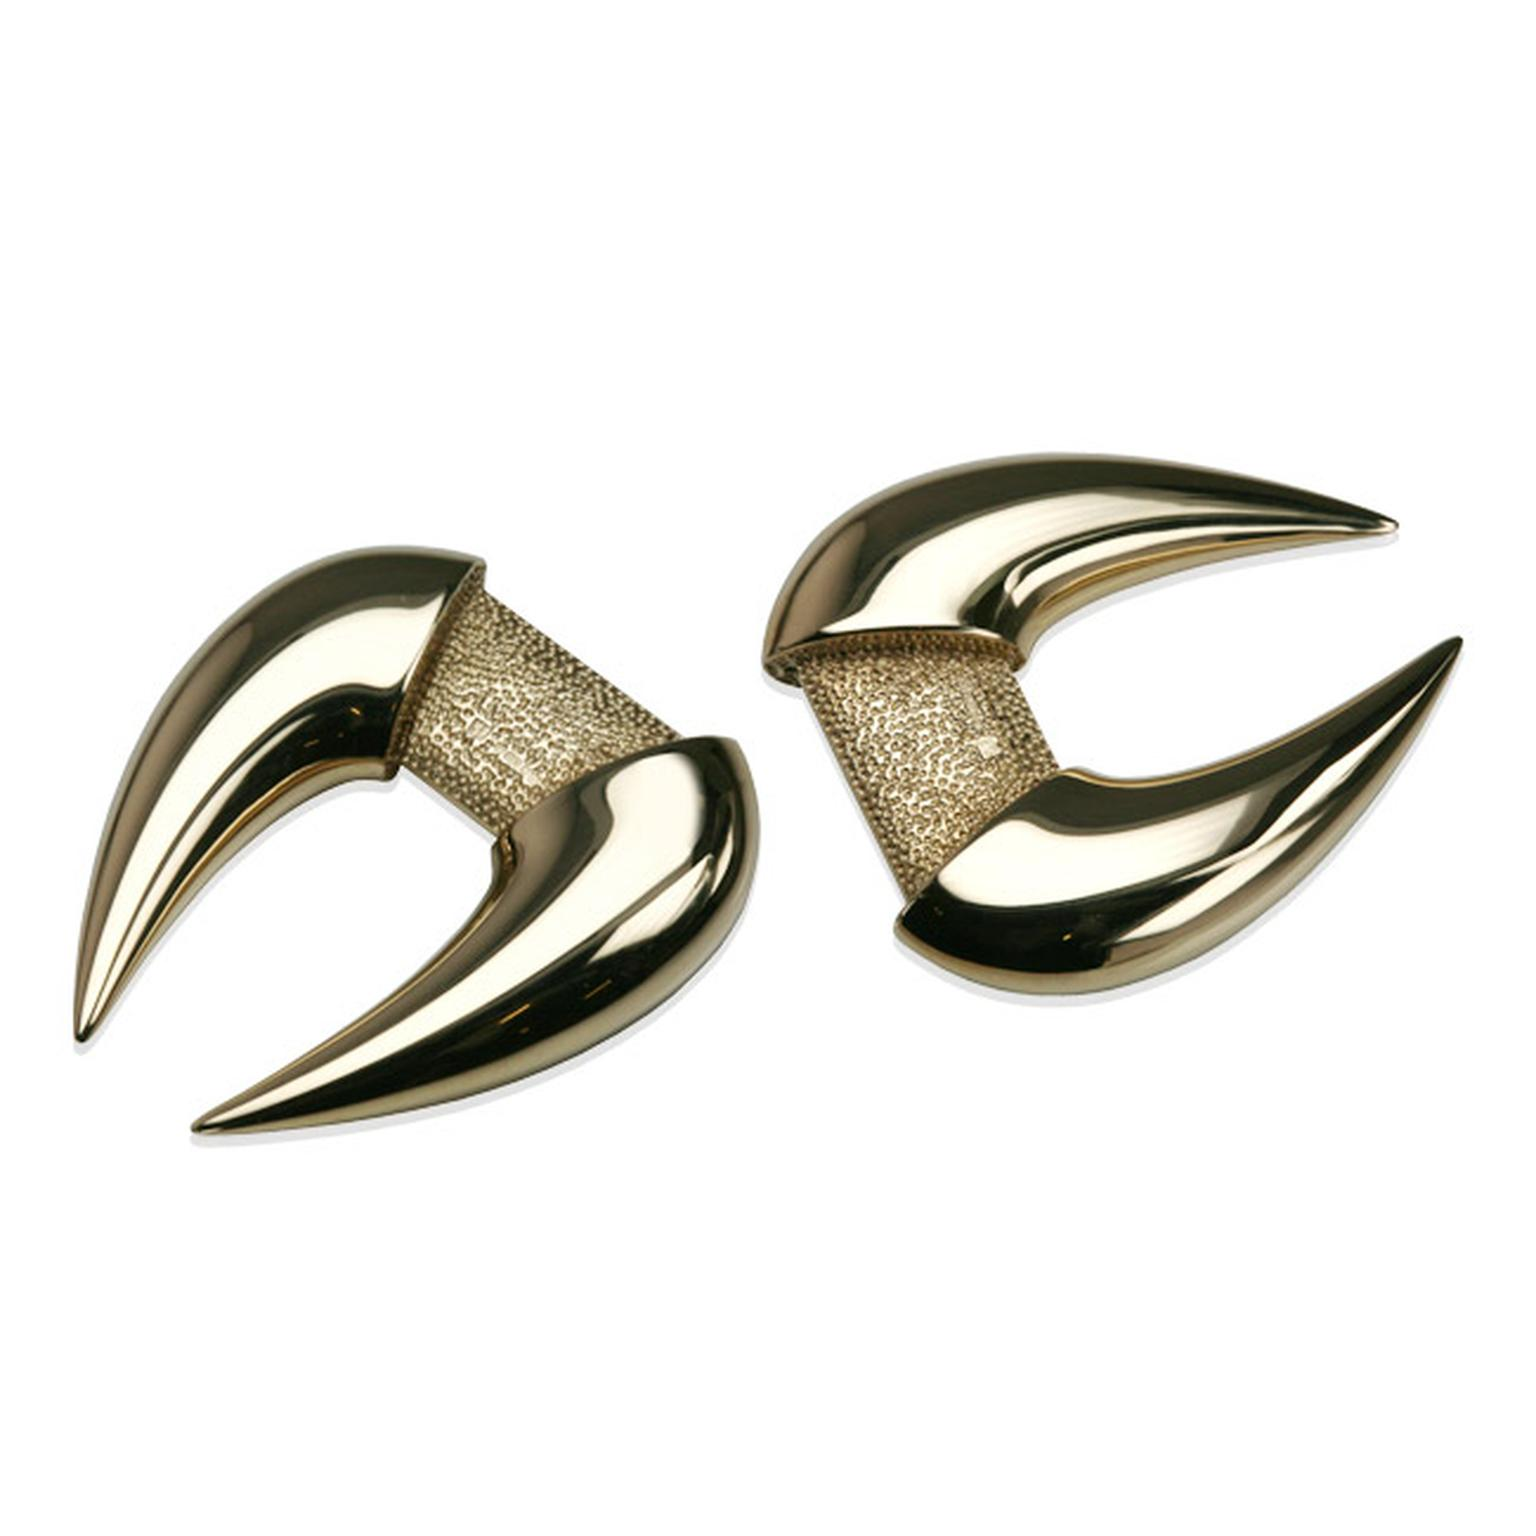 Stephen-Einhorn-Fang-Cufflinks-main